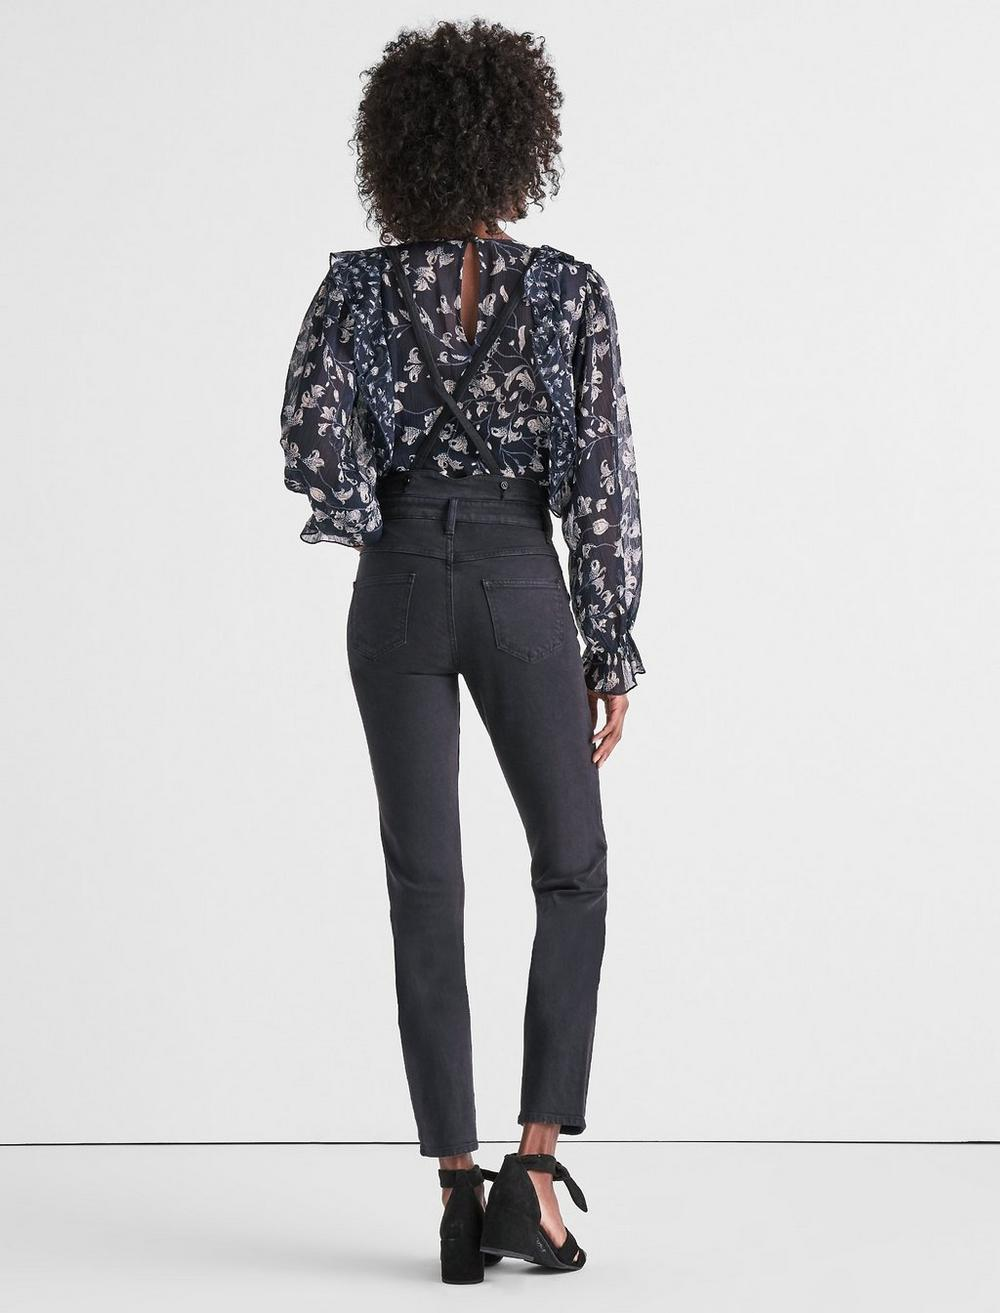 BRIDGETTE HIGH RISE SKINNY JEANS WITH SUSPENDERS, image 3